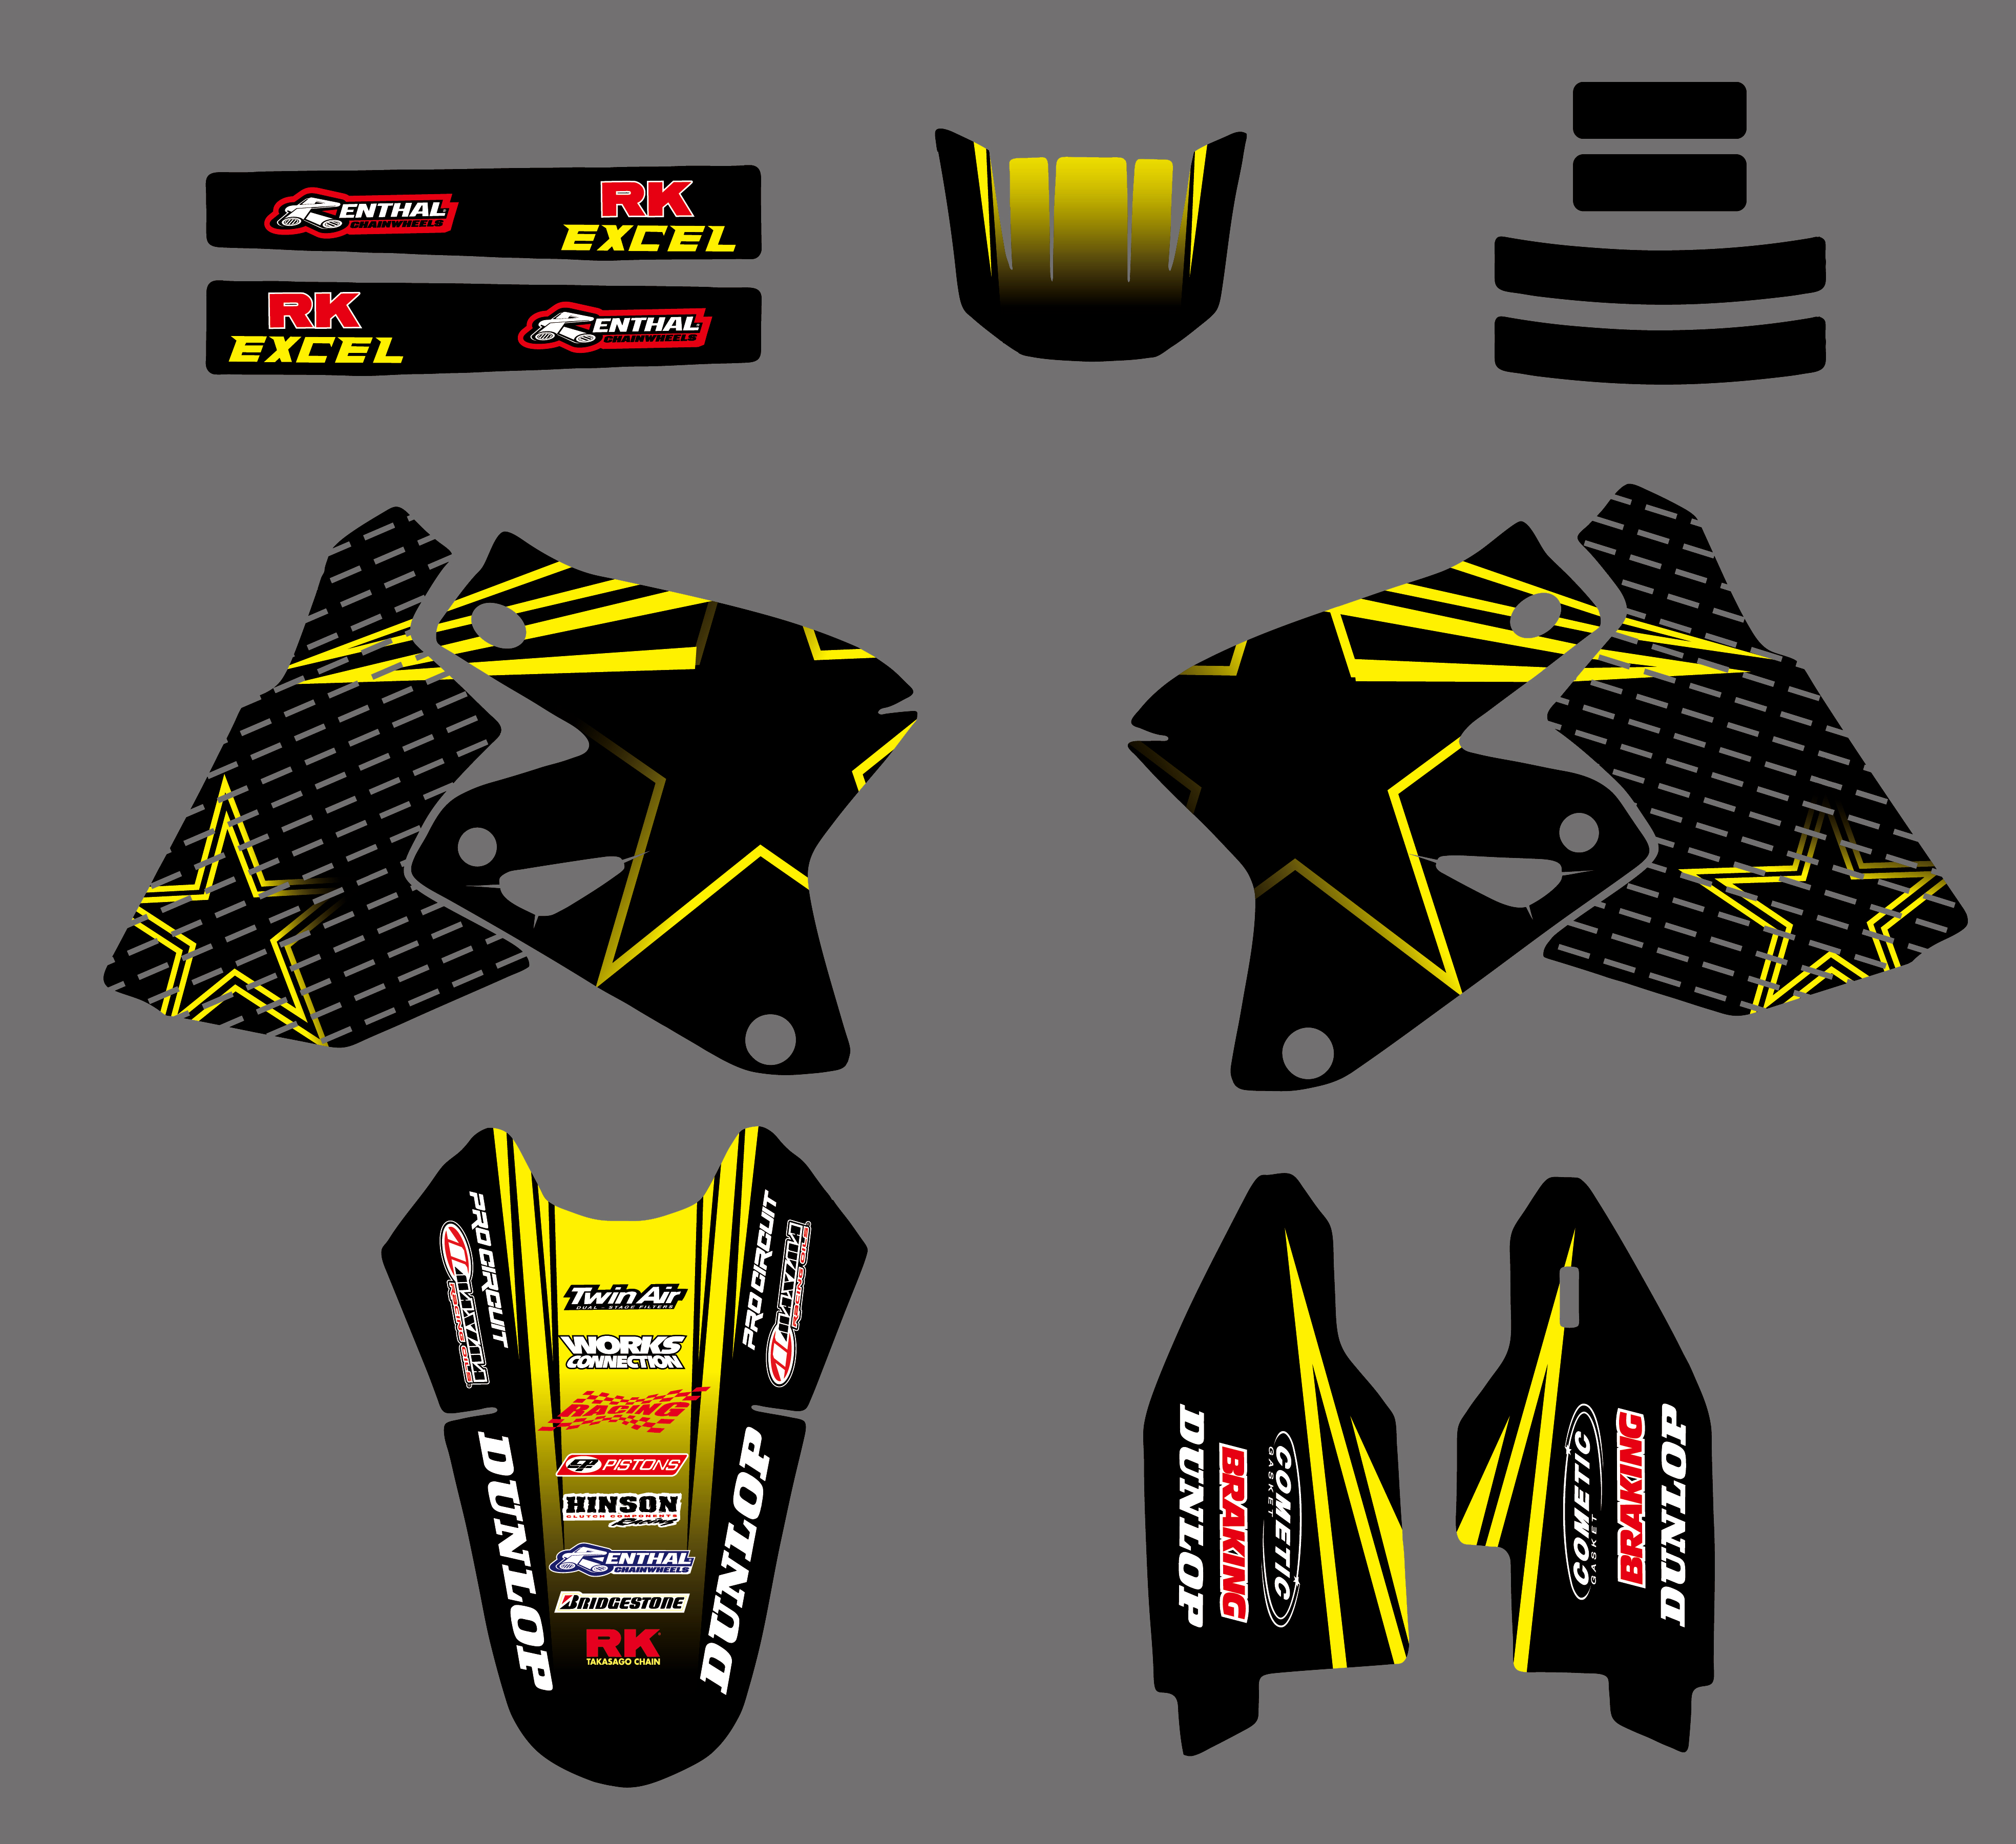 0026 Star New Style TEAM GRAPHICS DECALS <font><b>Stickers</b></font> FOR <font><b>SUZUKI</b></font> DRZ400 DRZ DRZ400E DRZ400SM KLX400 ALL YEAR image